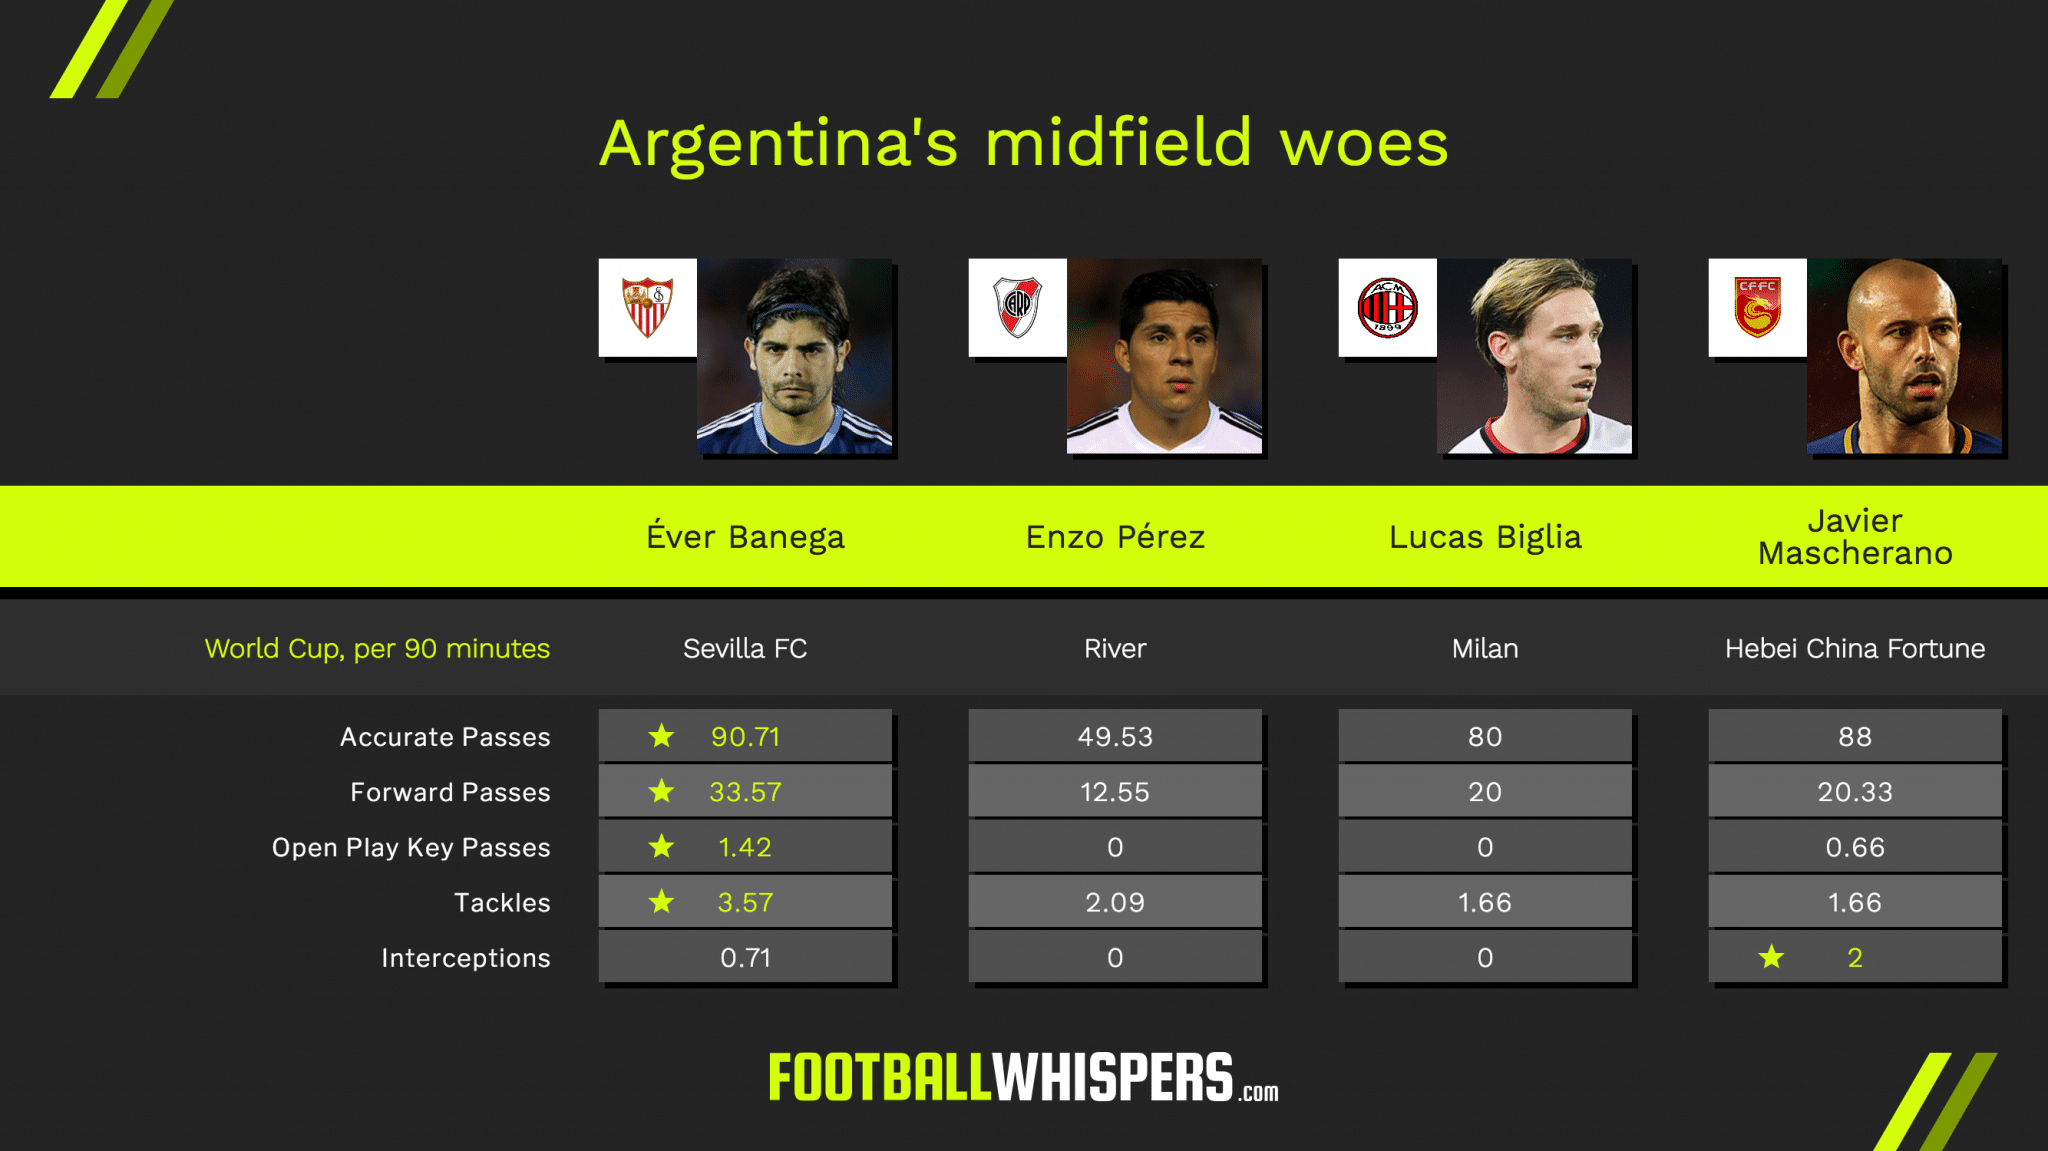 Éver Banega compared to Argentina's other central midfield options